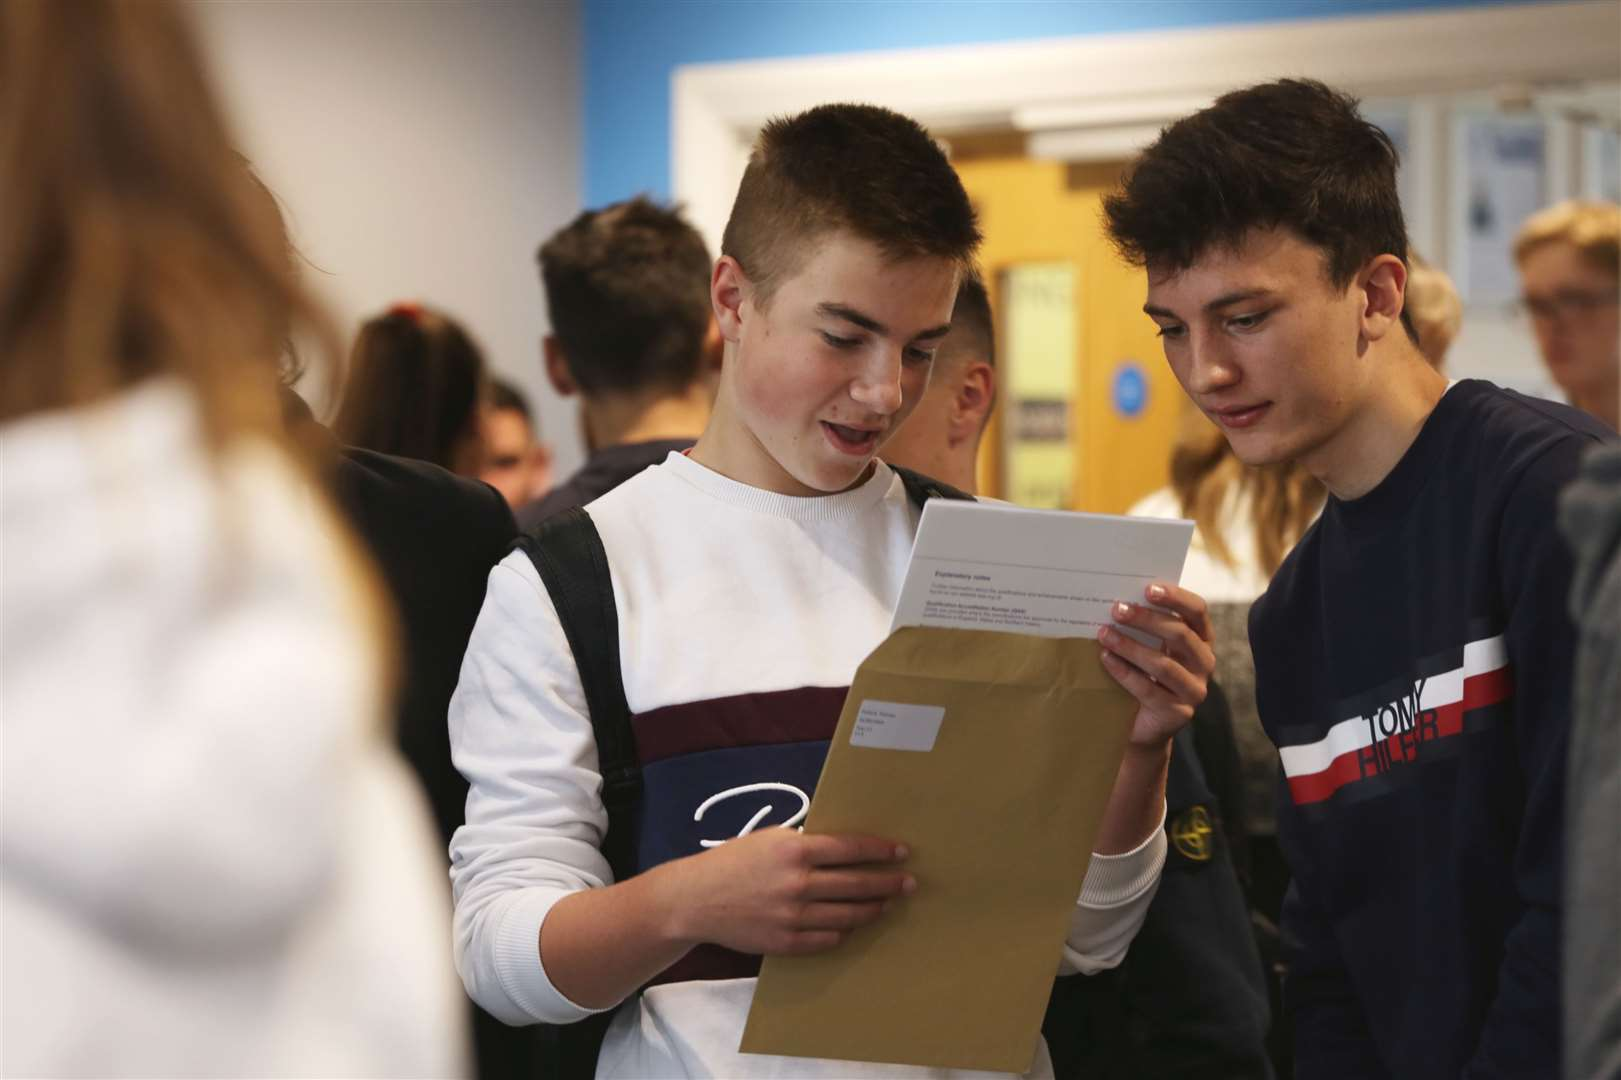 Pupils review their G.C.S.E results at Toot Hill School, Bingham. 220819TV1-8. (15600986)